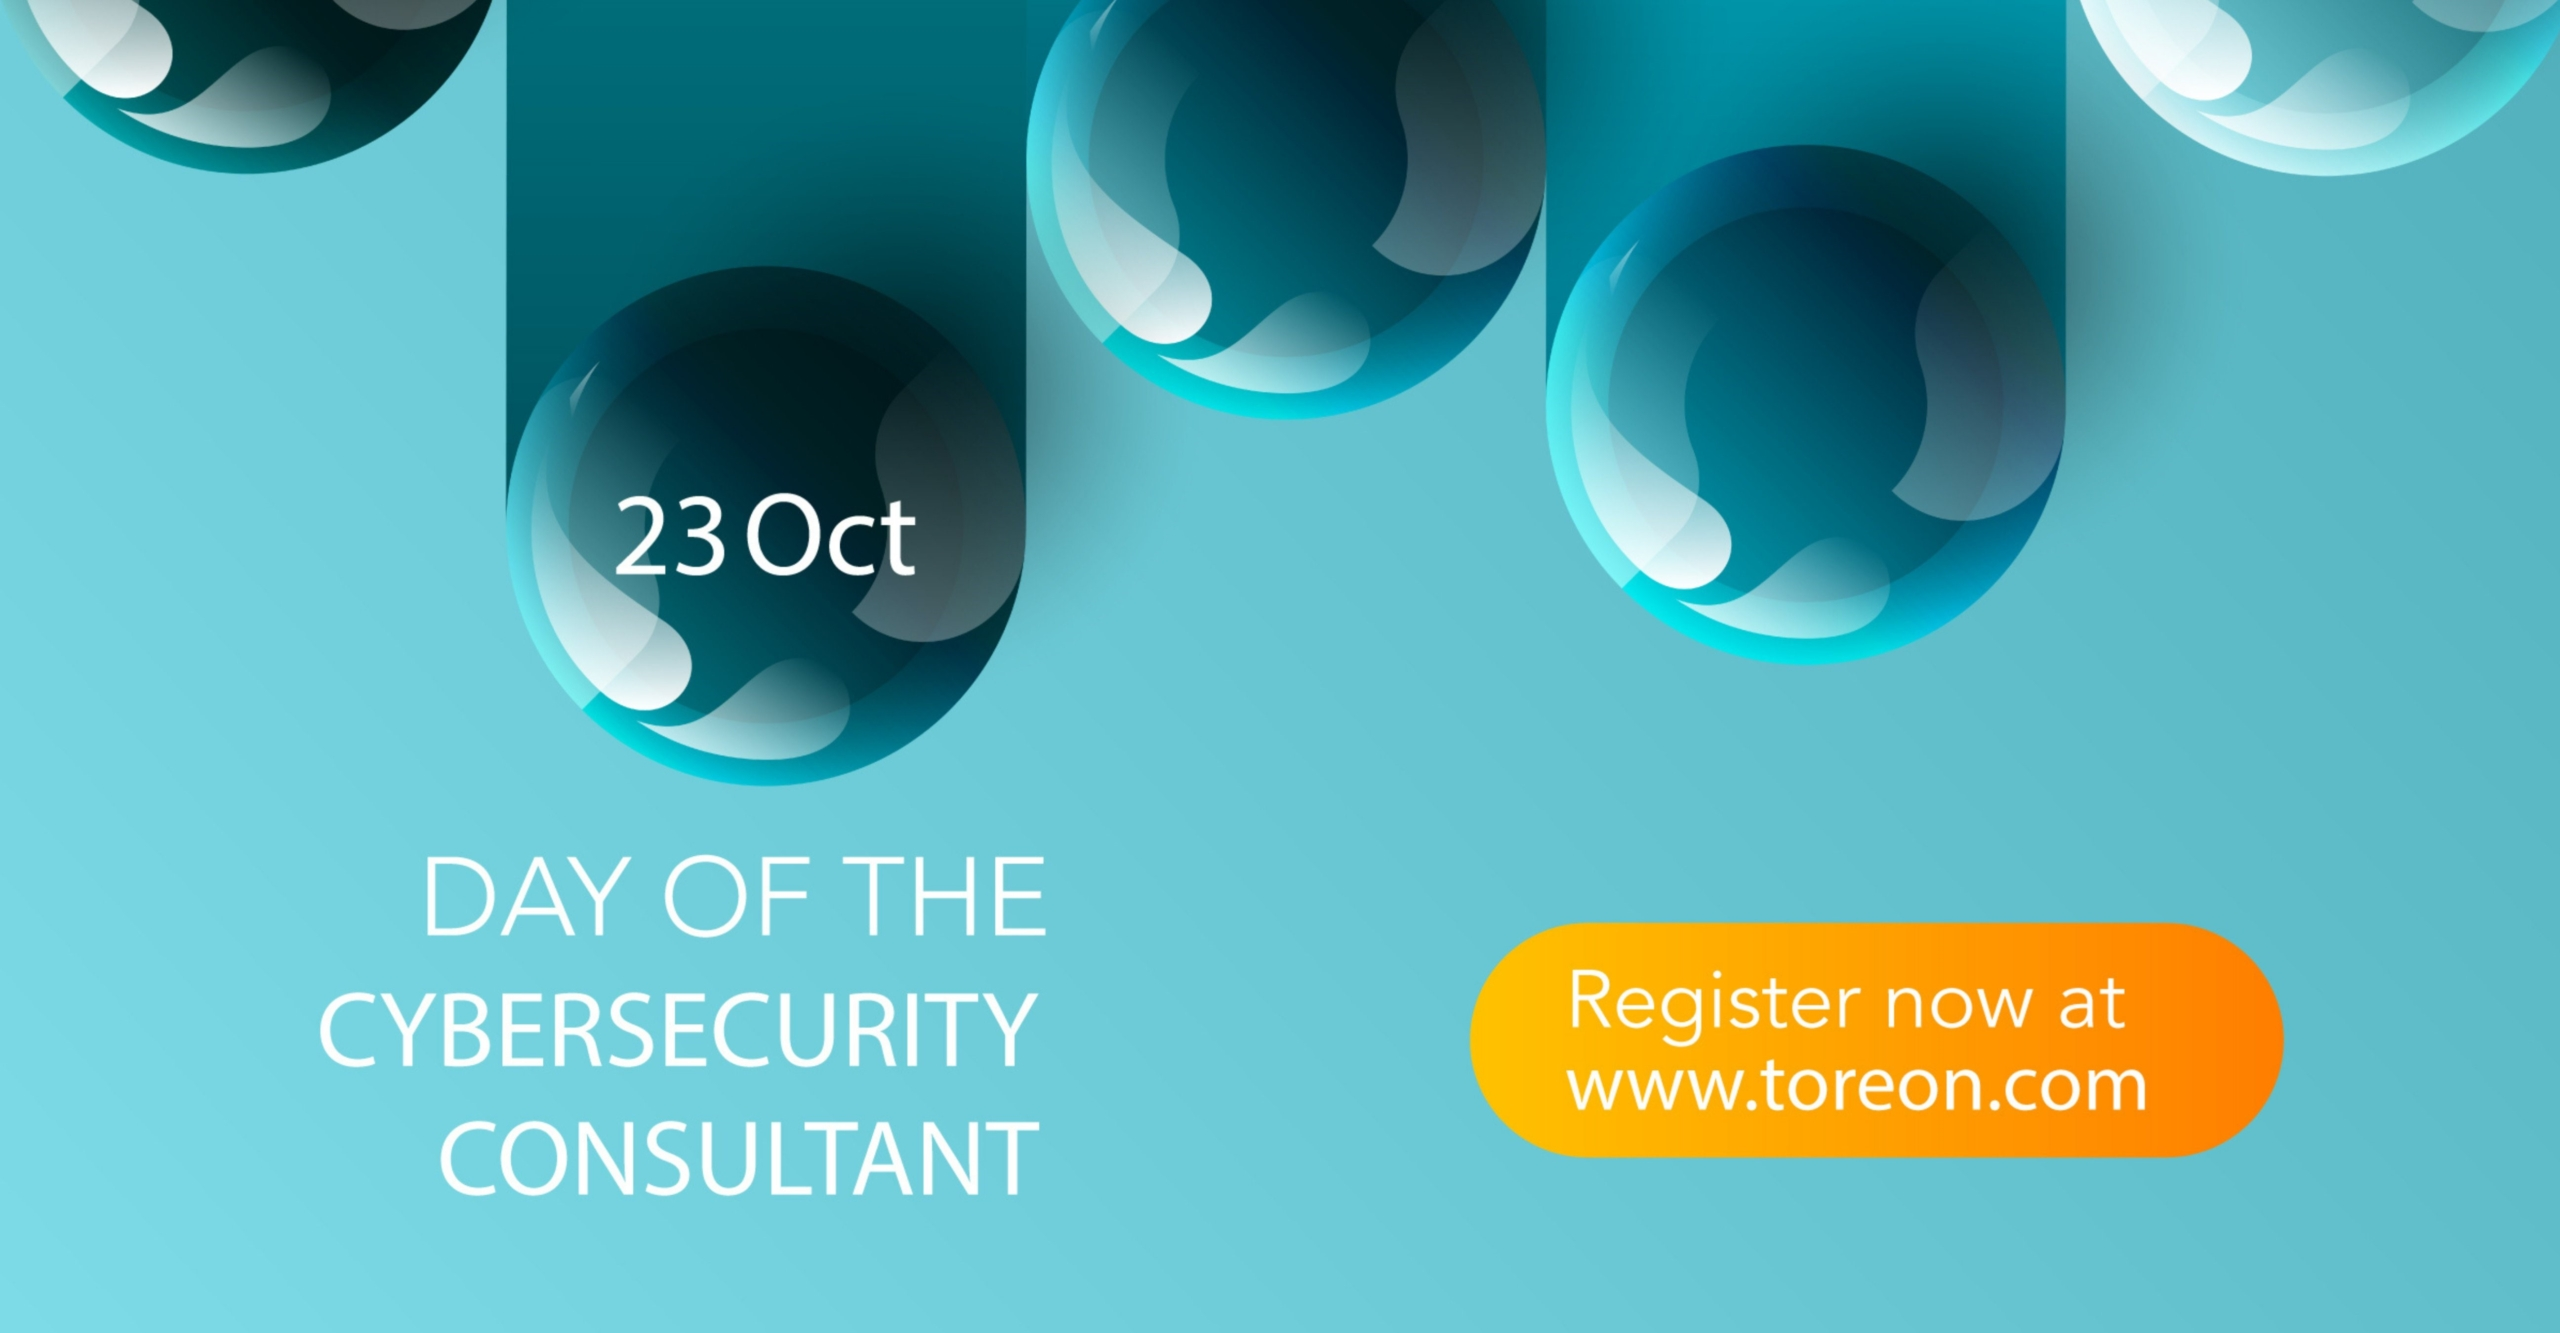 Day of the Cybersecurity Consultant